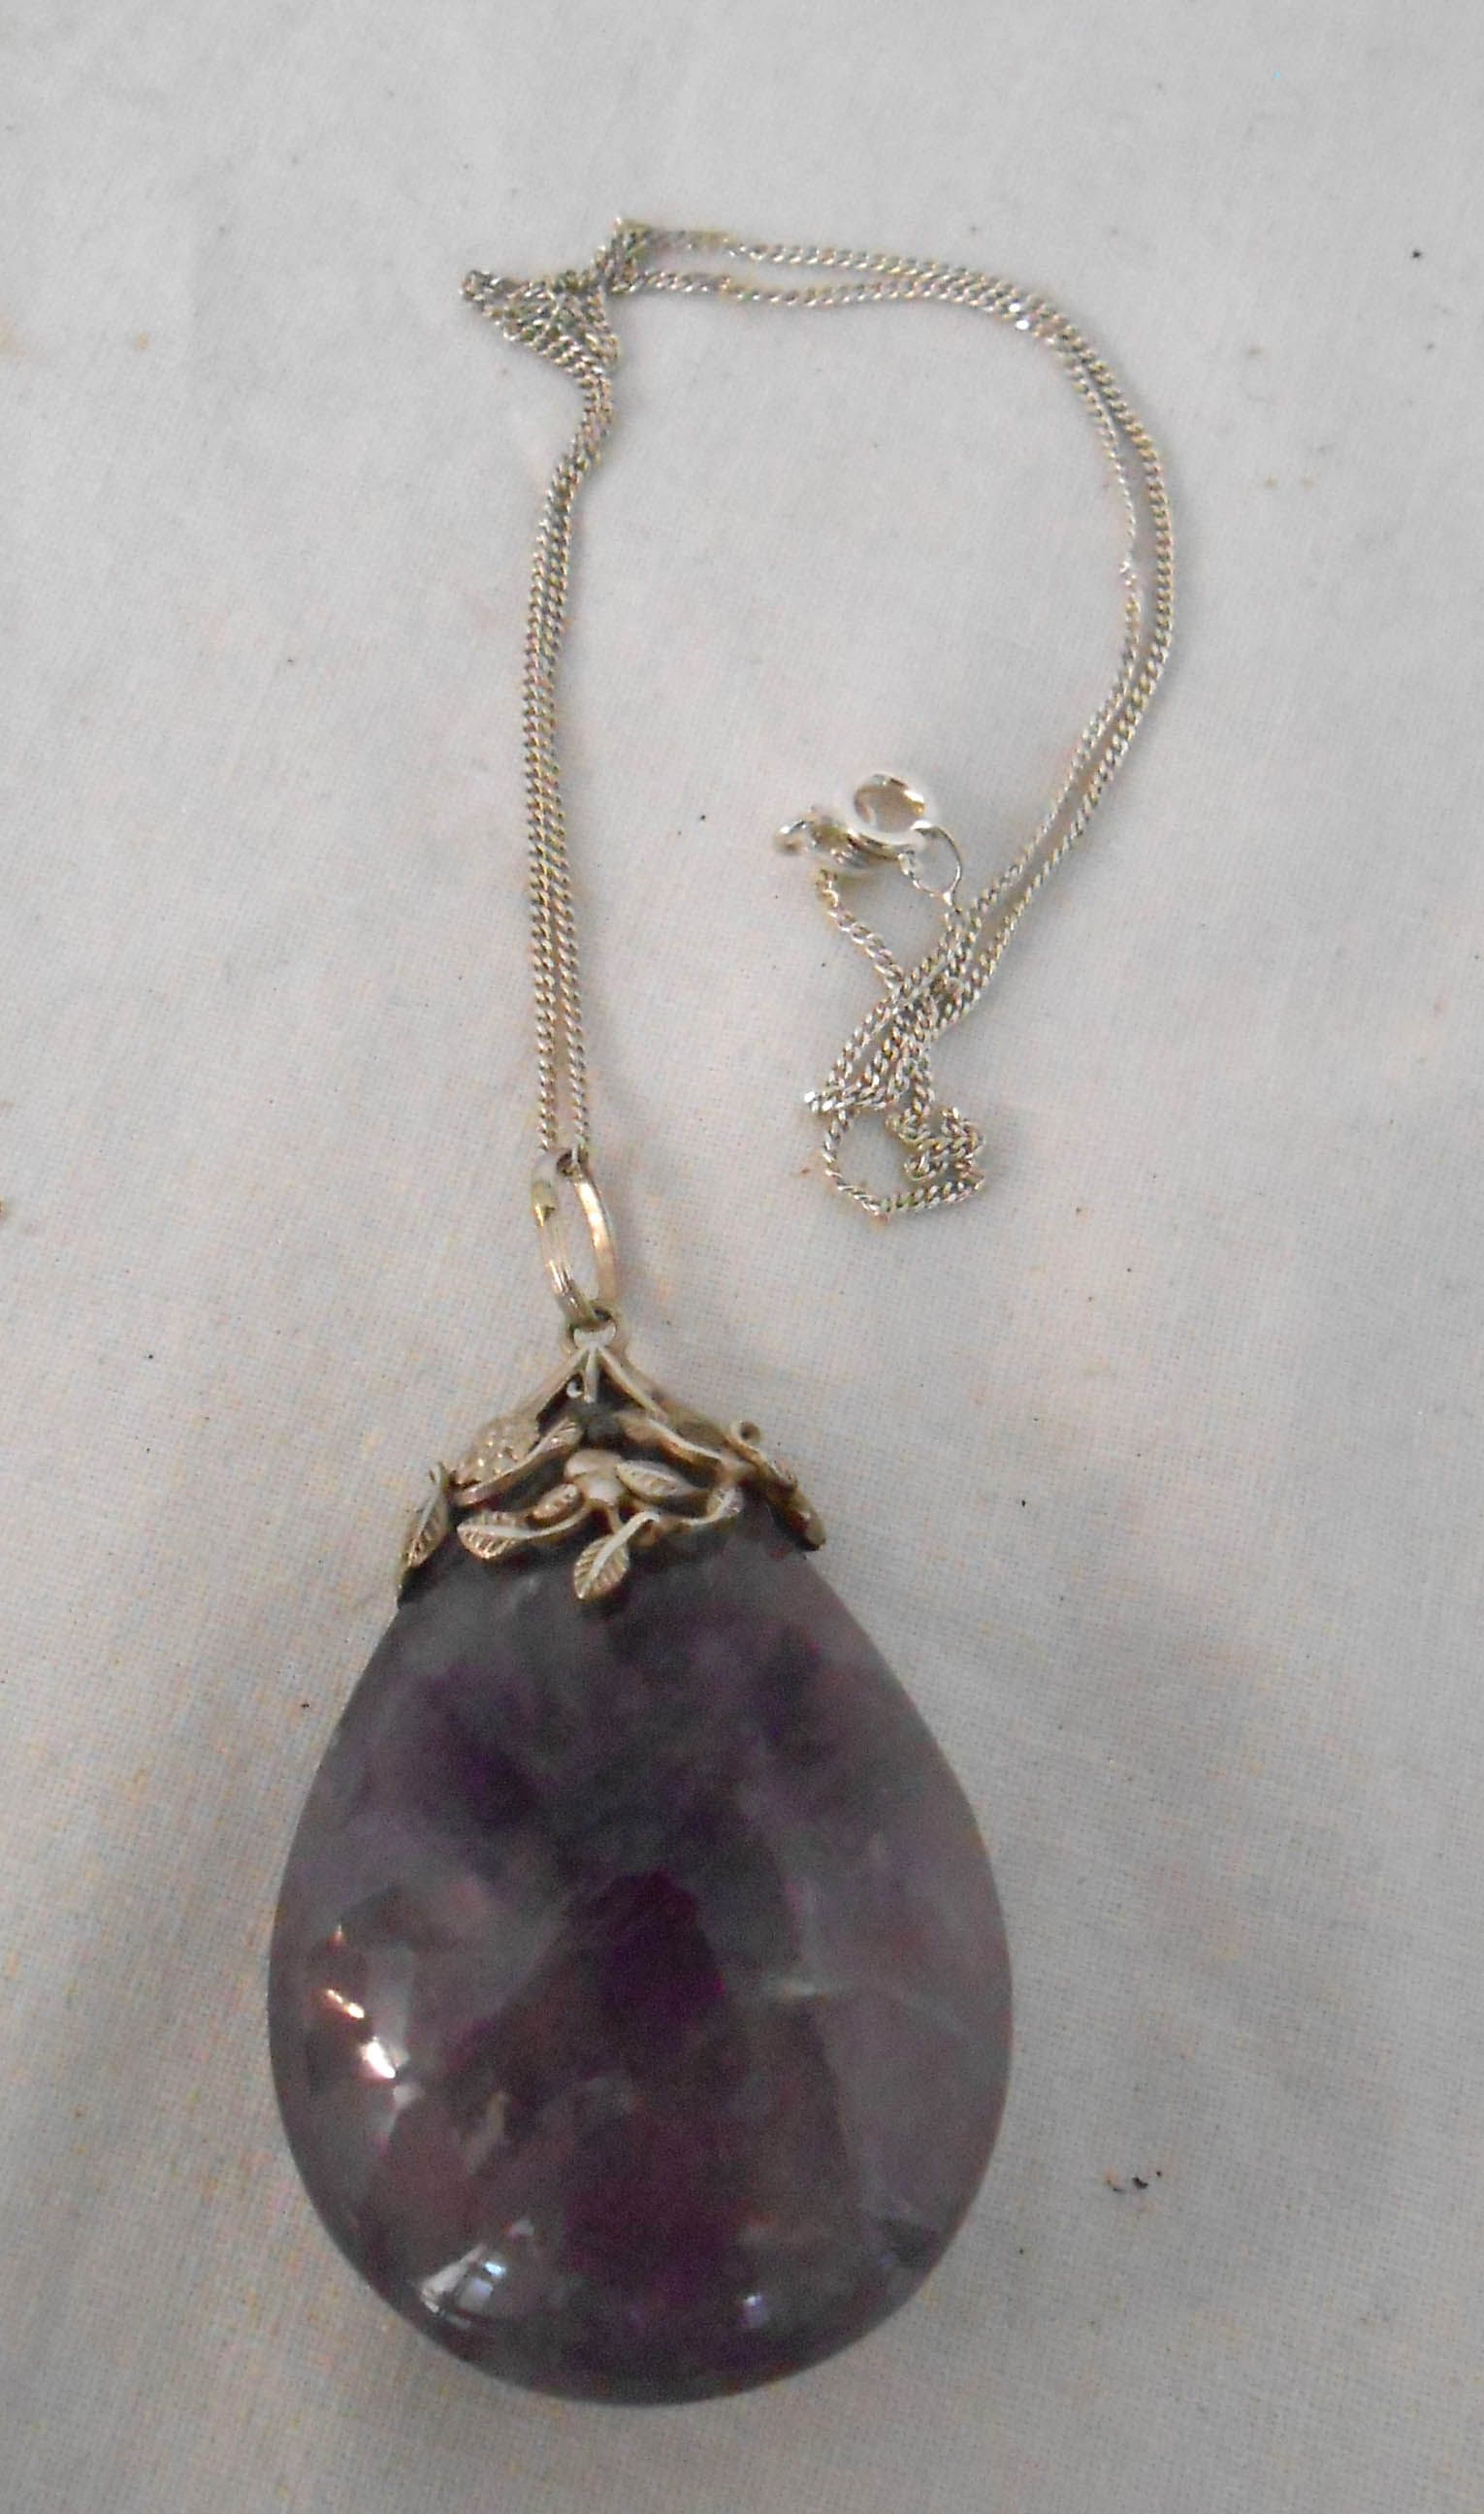 A white metal mounted polished amethyst large drop pendant, on marked 925 chain